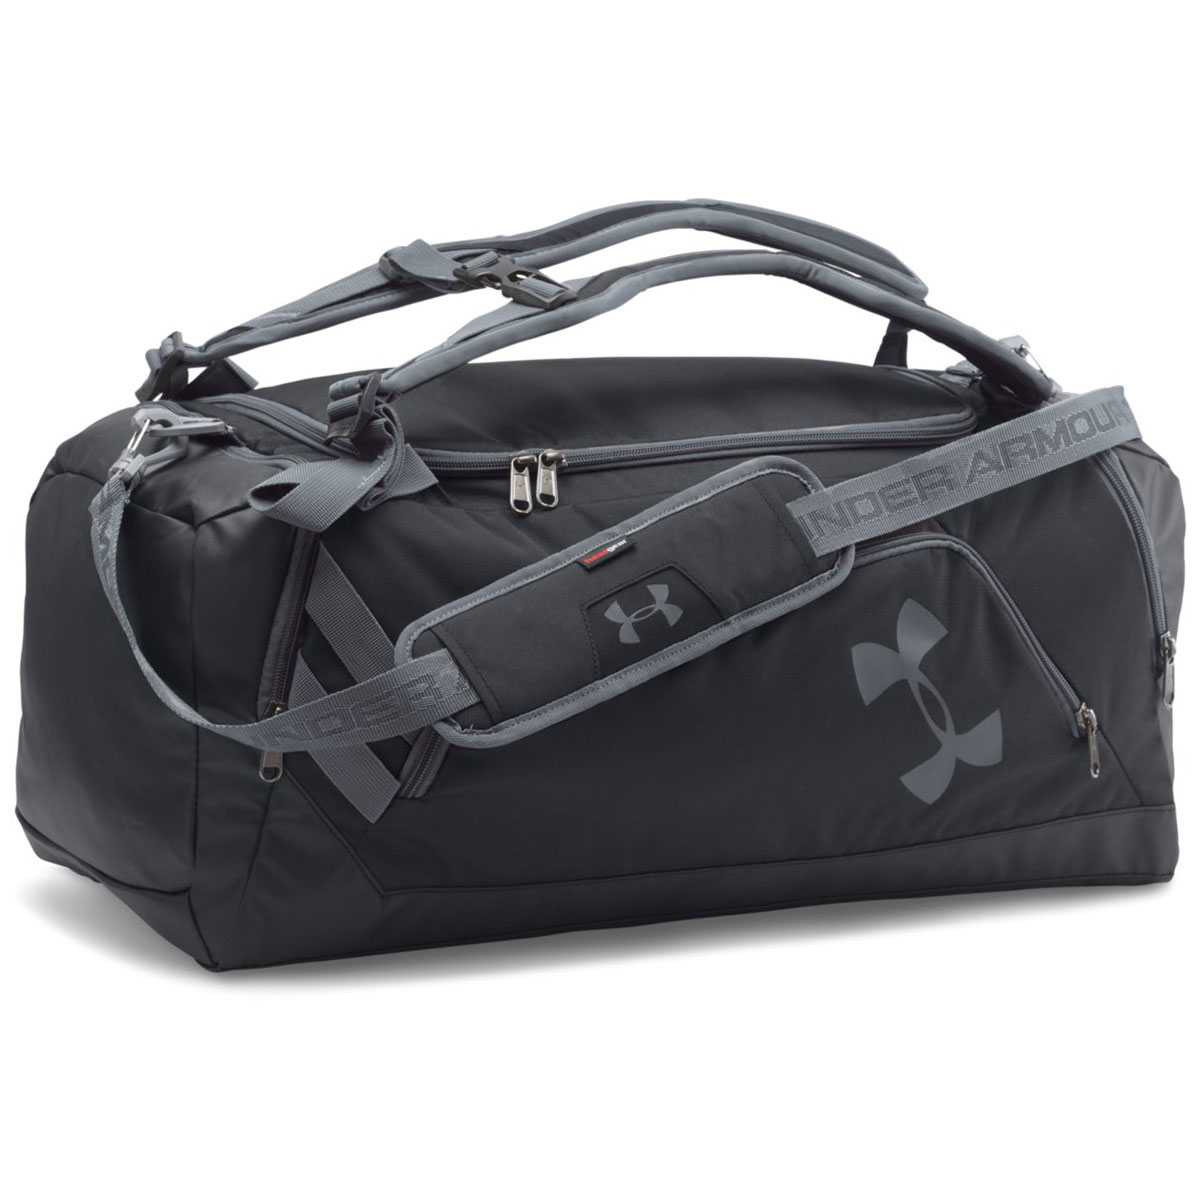 under armour travel bag cheap   OFF38% The Largest Catalog Discounts 690dc48ae0aab